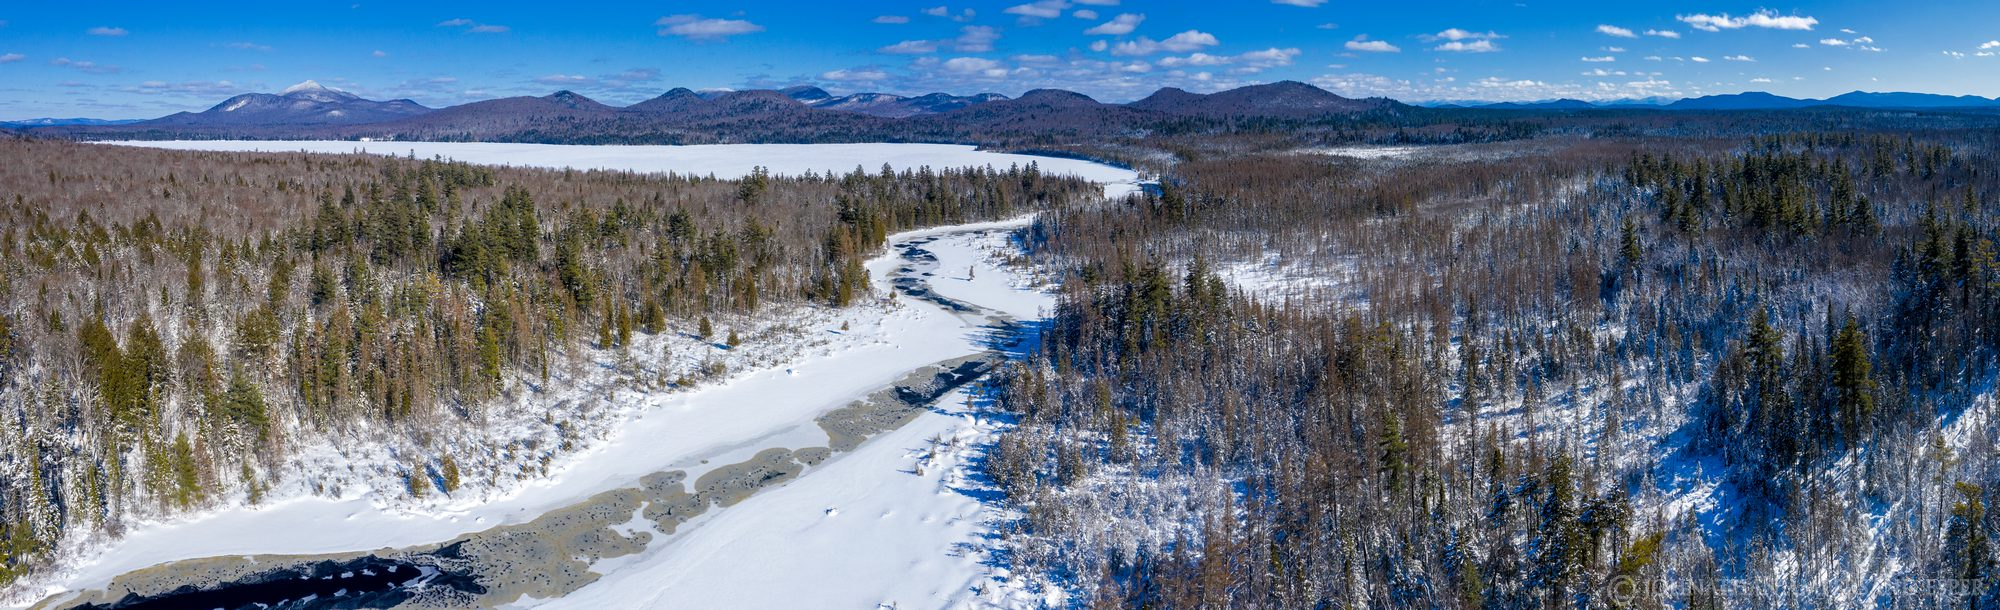 Meacham Lake,Meacham Lake outlet,outlet,channel,March,2020,winter,late winter,sunny,drone,panorama, photo